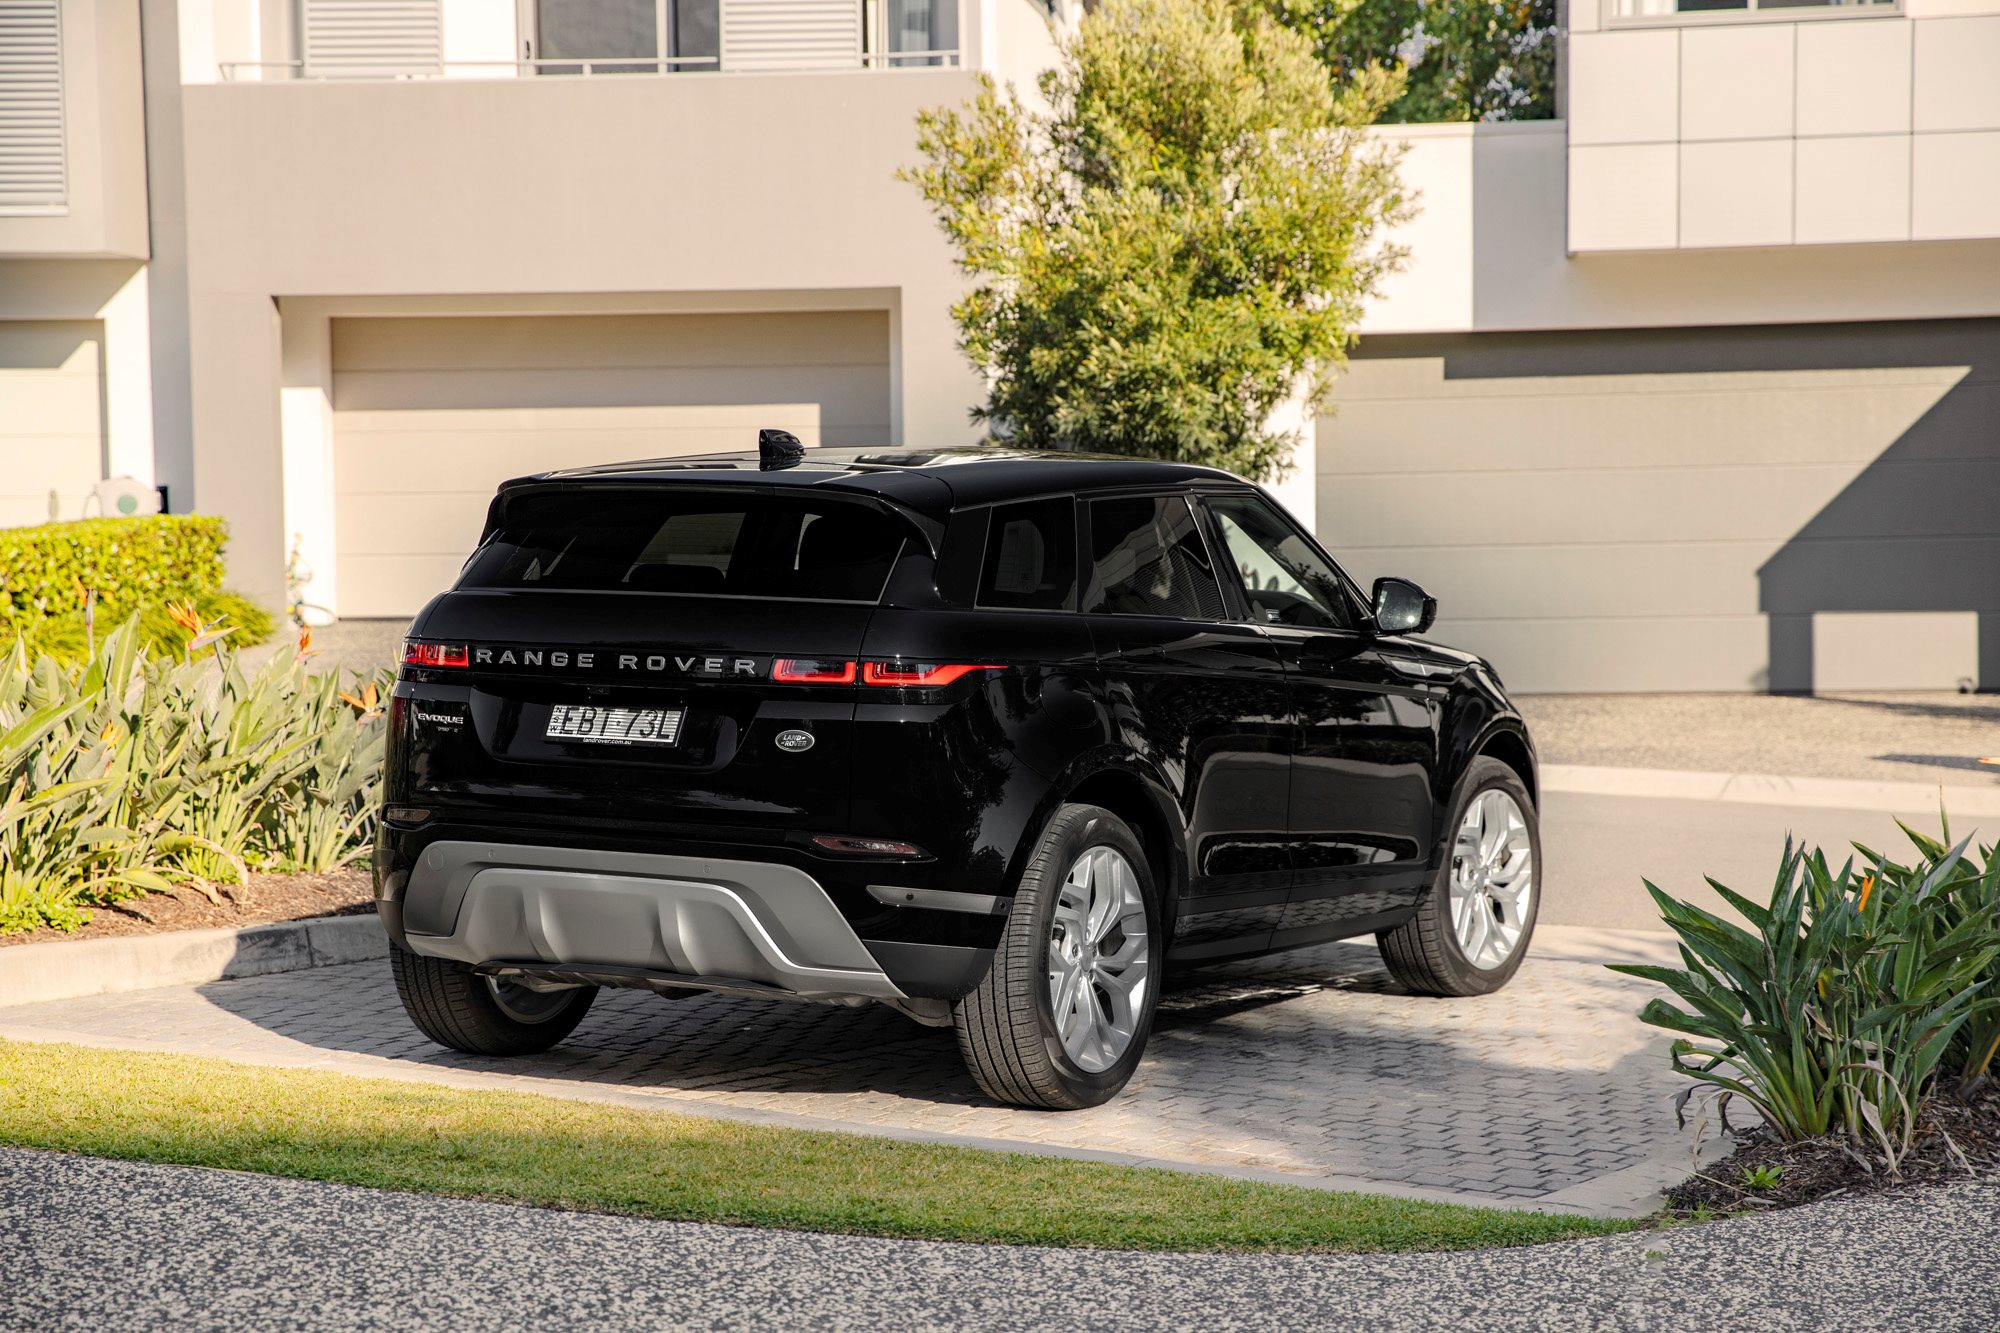 Range Rover Evoque P200 S 2020 Review